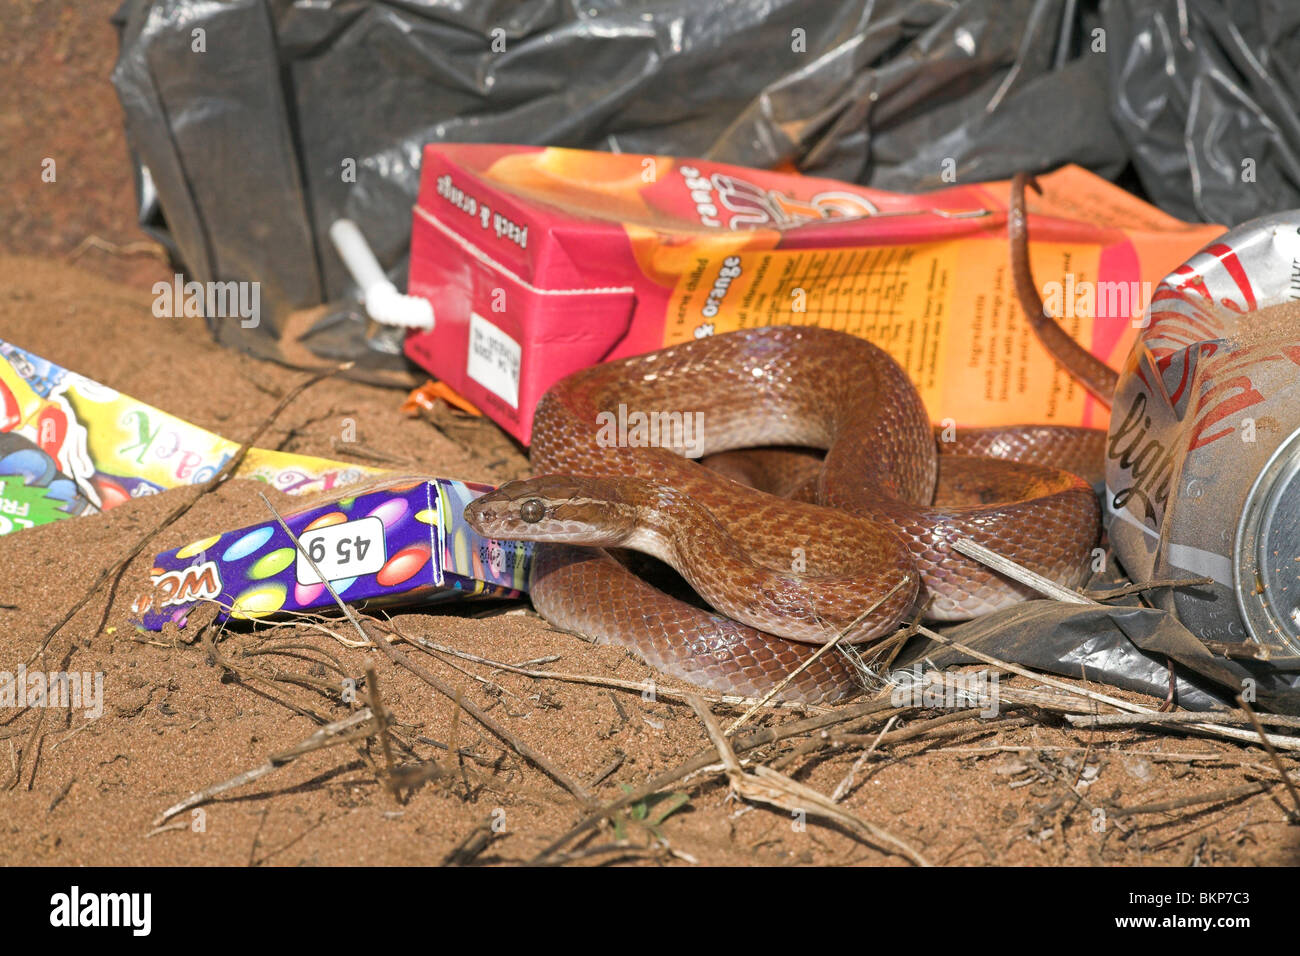 Photo of a brown house snake between colourful garbage, brown house snakes often live around humans as they hunt - Stock Image